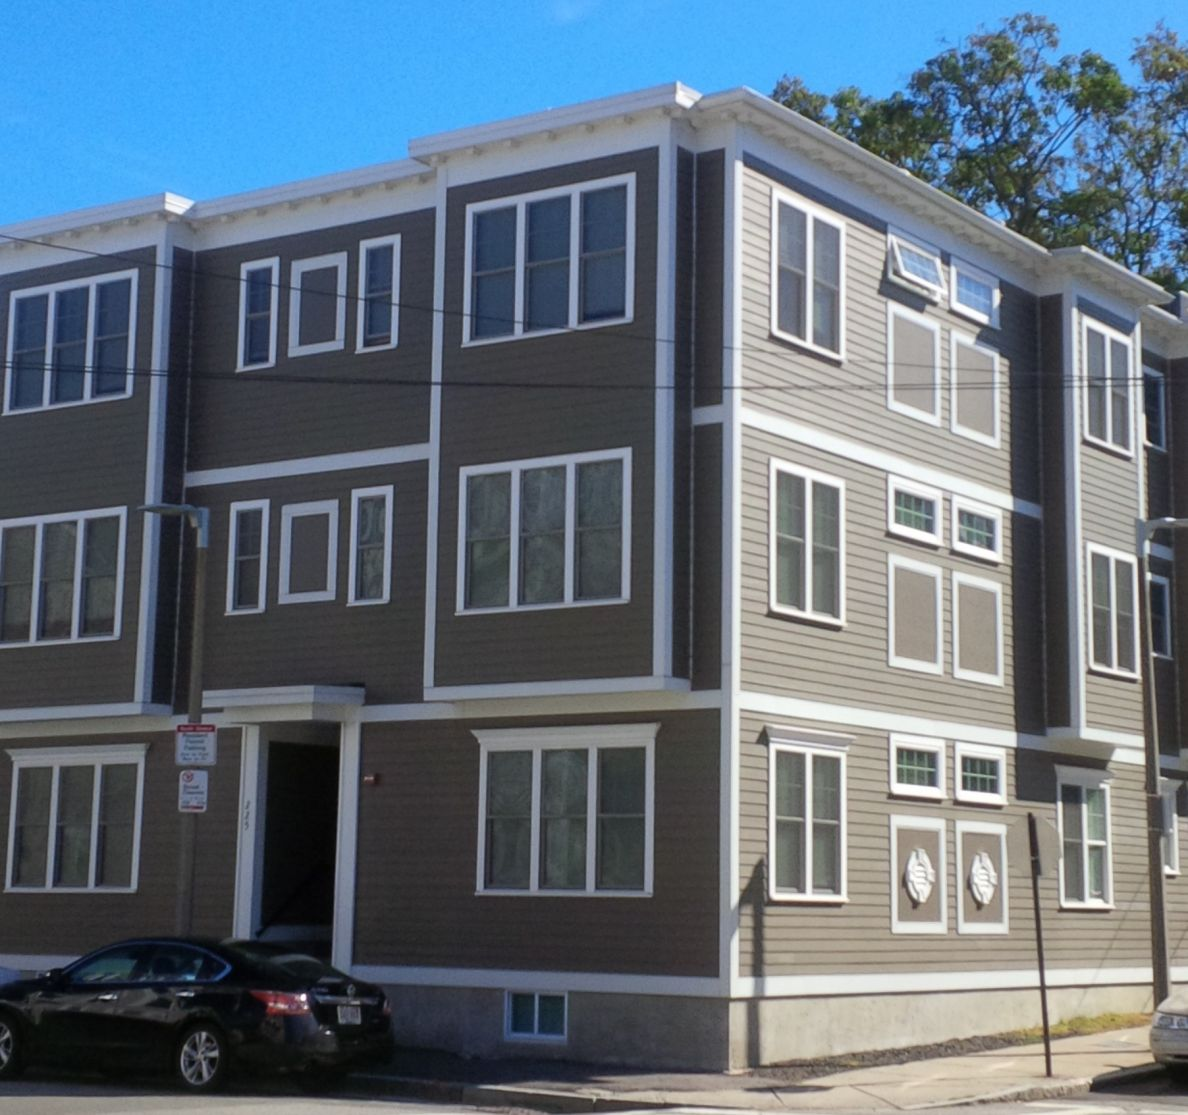 West Side 2 Bedroom 2 Bathroom Apartment for rent in South Boston